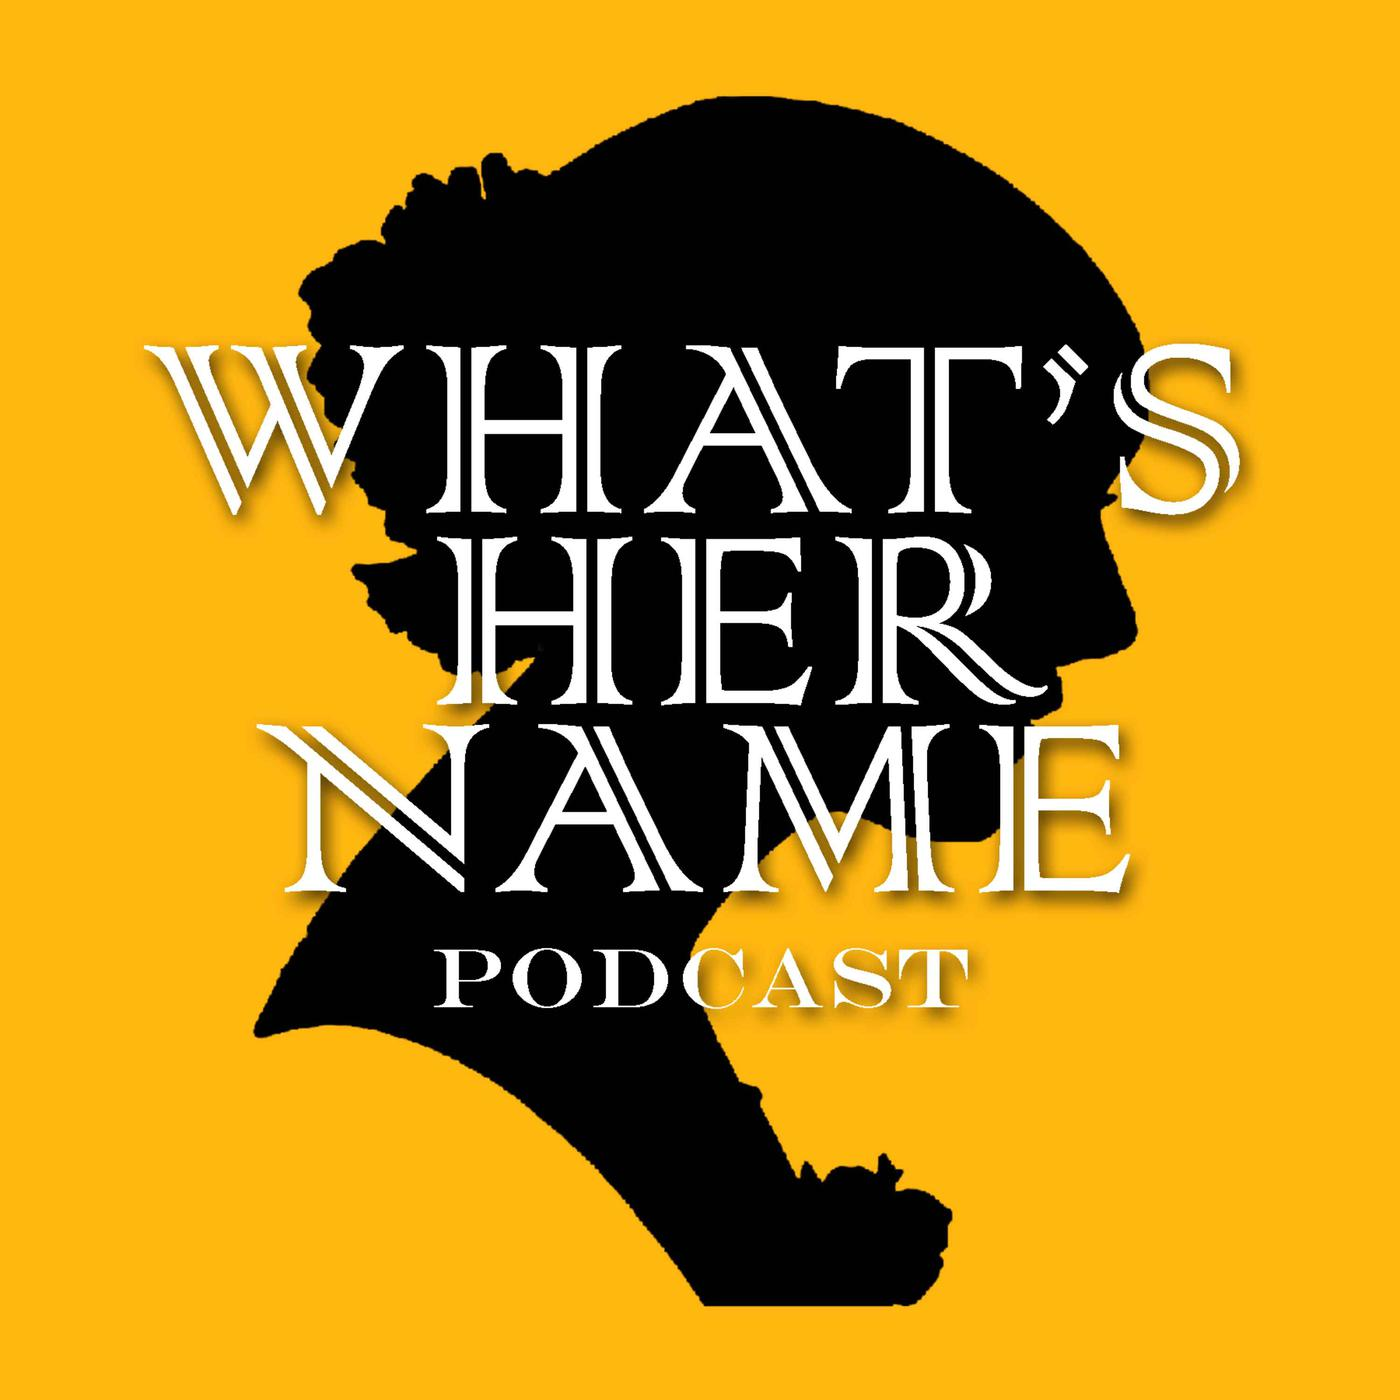 What'sHerName women's history podcast tells the stories of fascinating women you've never heard of, but should have. Through compelling interviews with well-known and unknown scholars, curators, authors and historians, What'sHerName restores women's voices to the conversation.